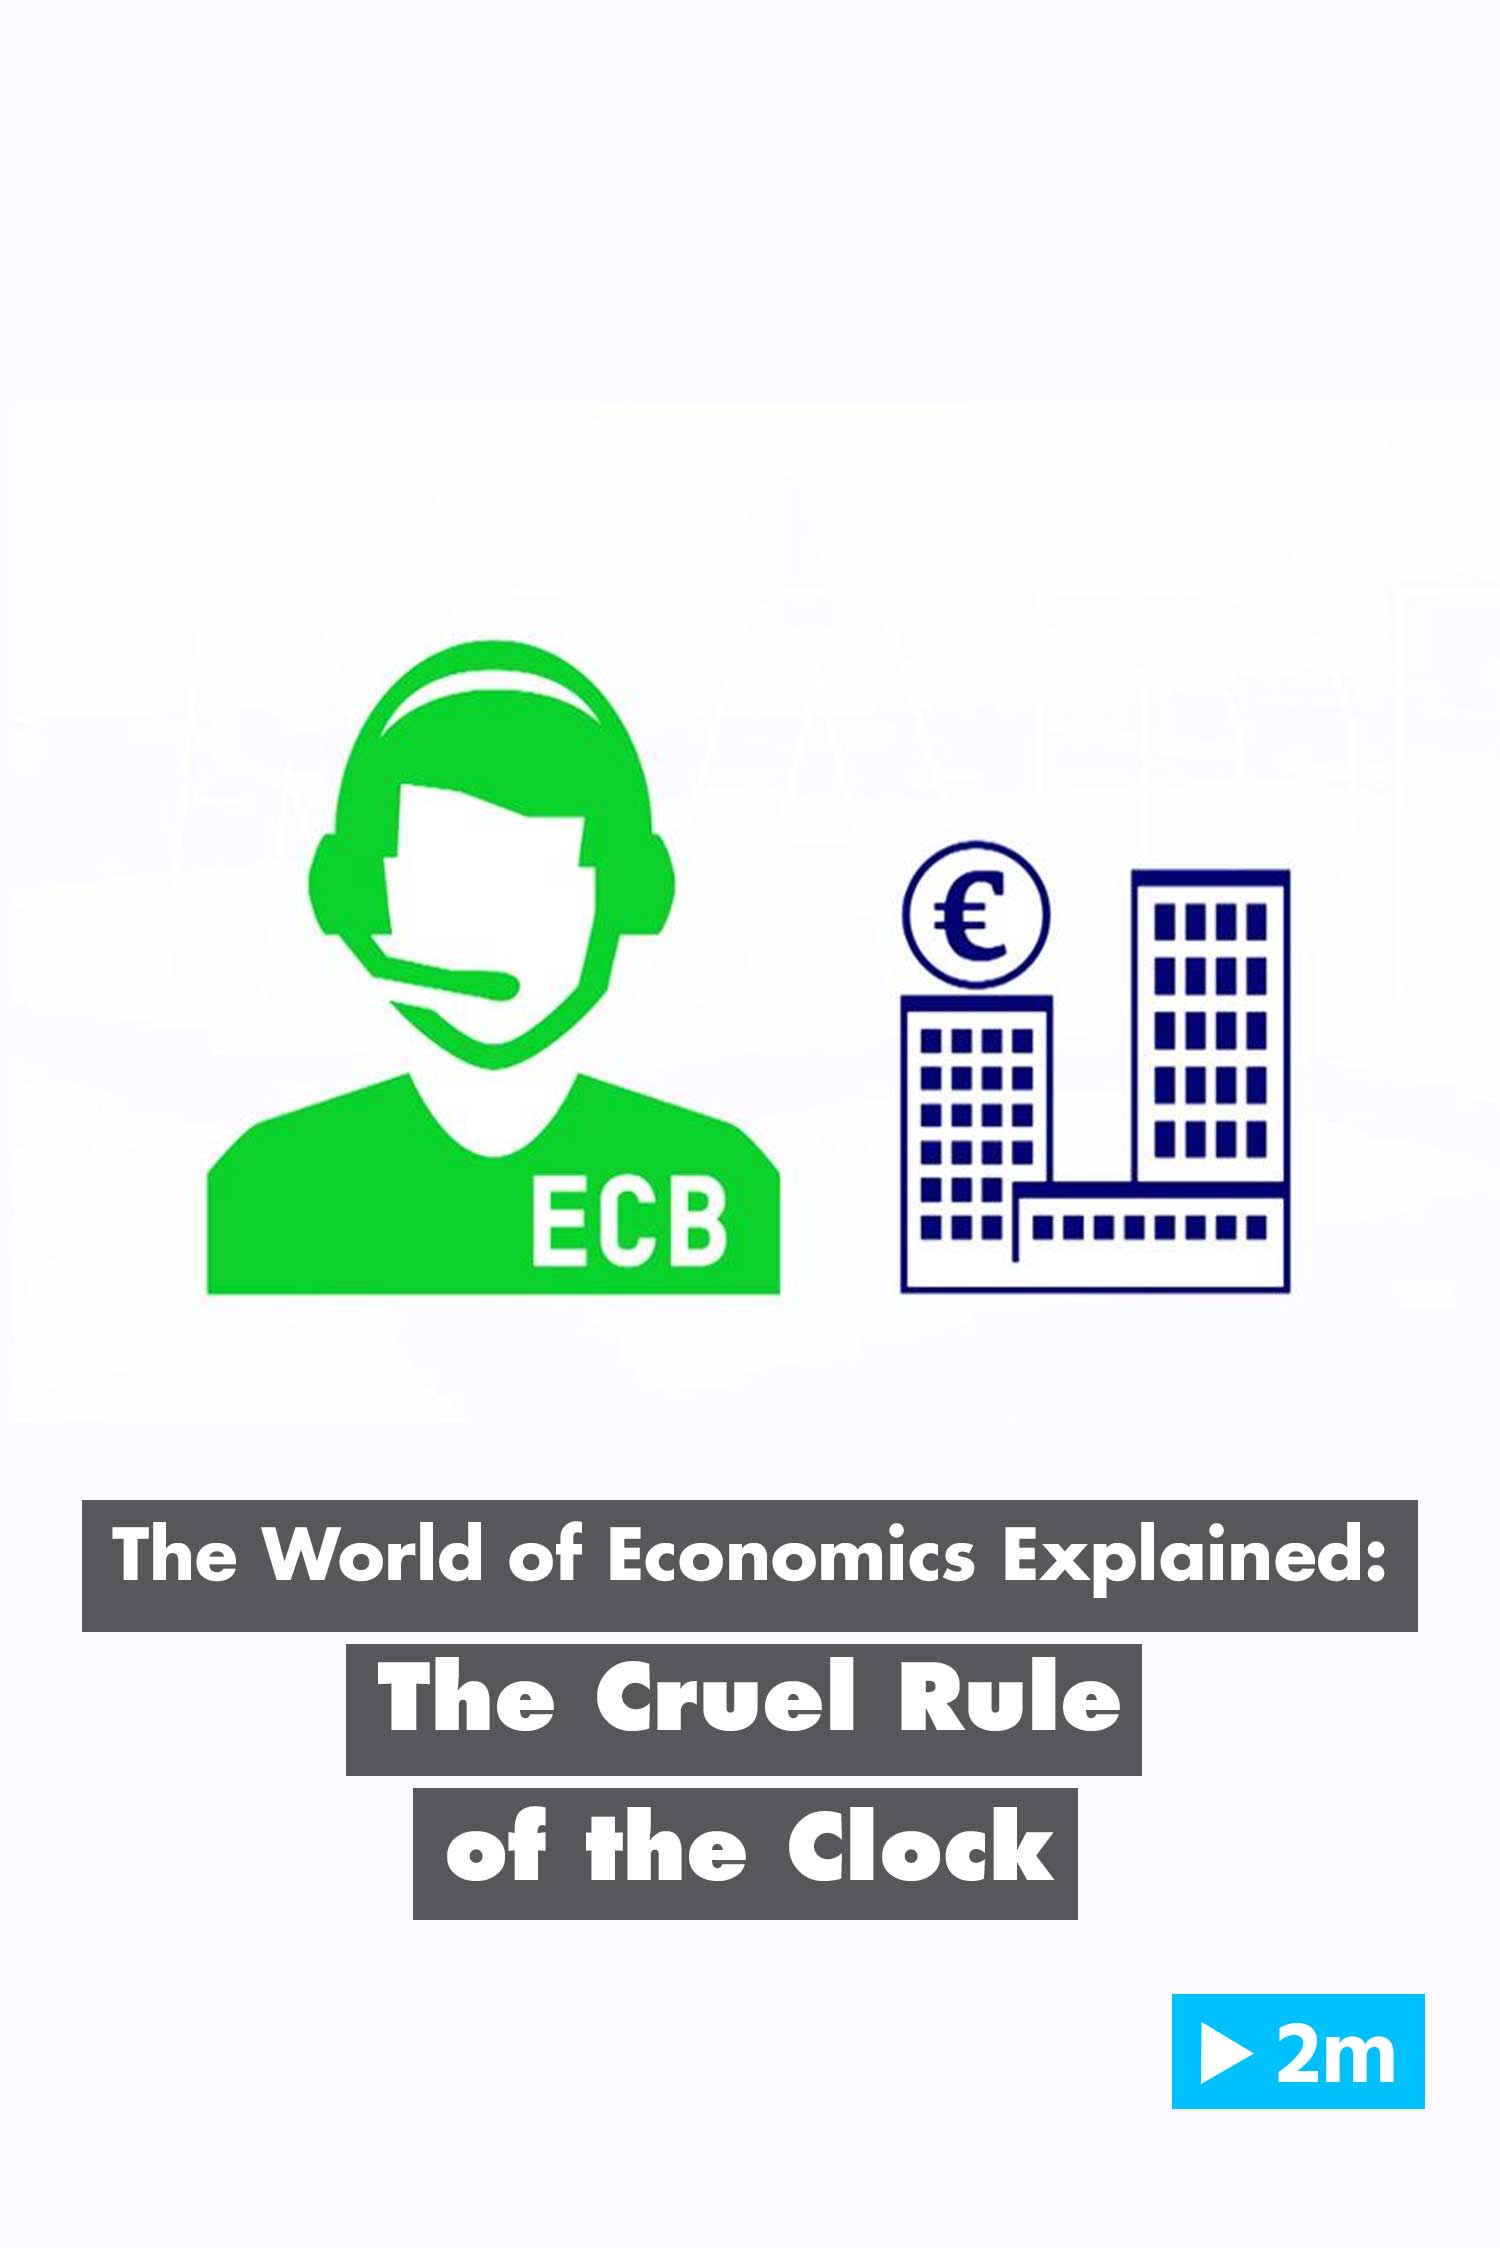 The World of Economics Explained: The cruel rule of the clock